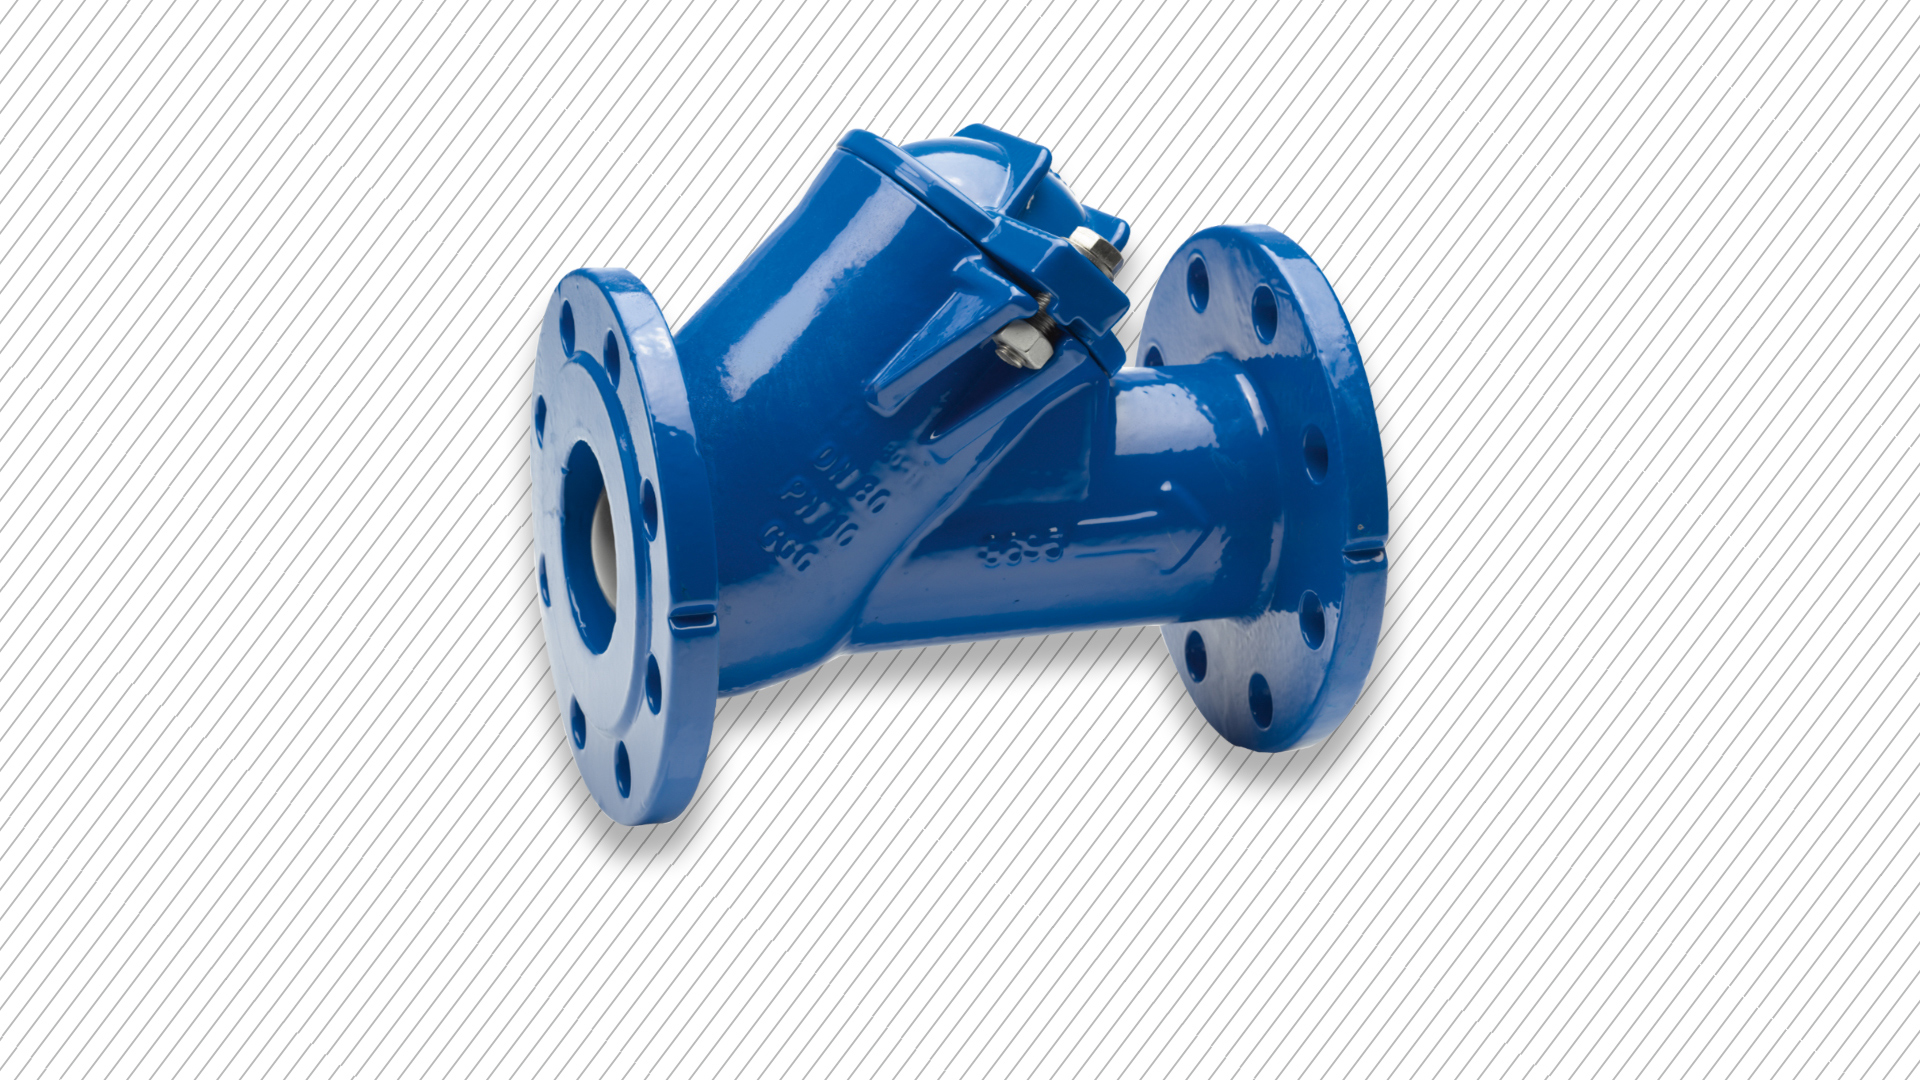 Read all about the AVK ball check valves